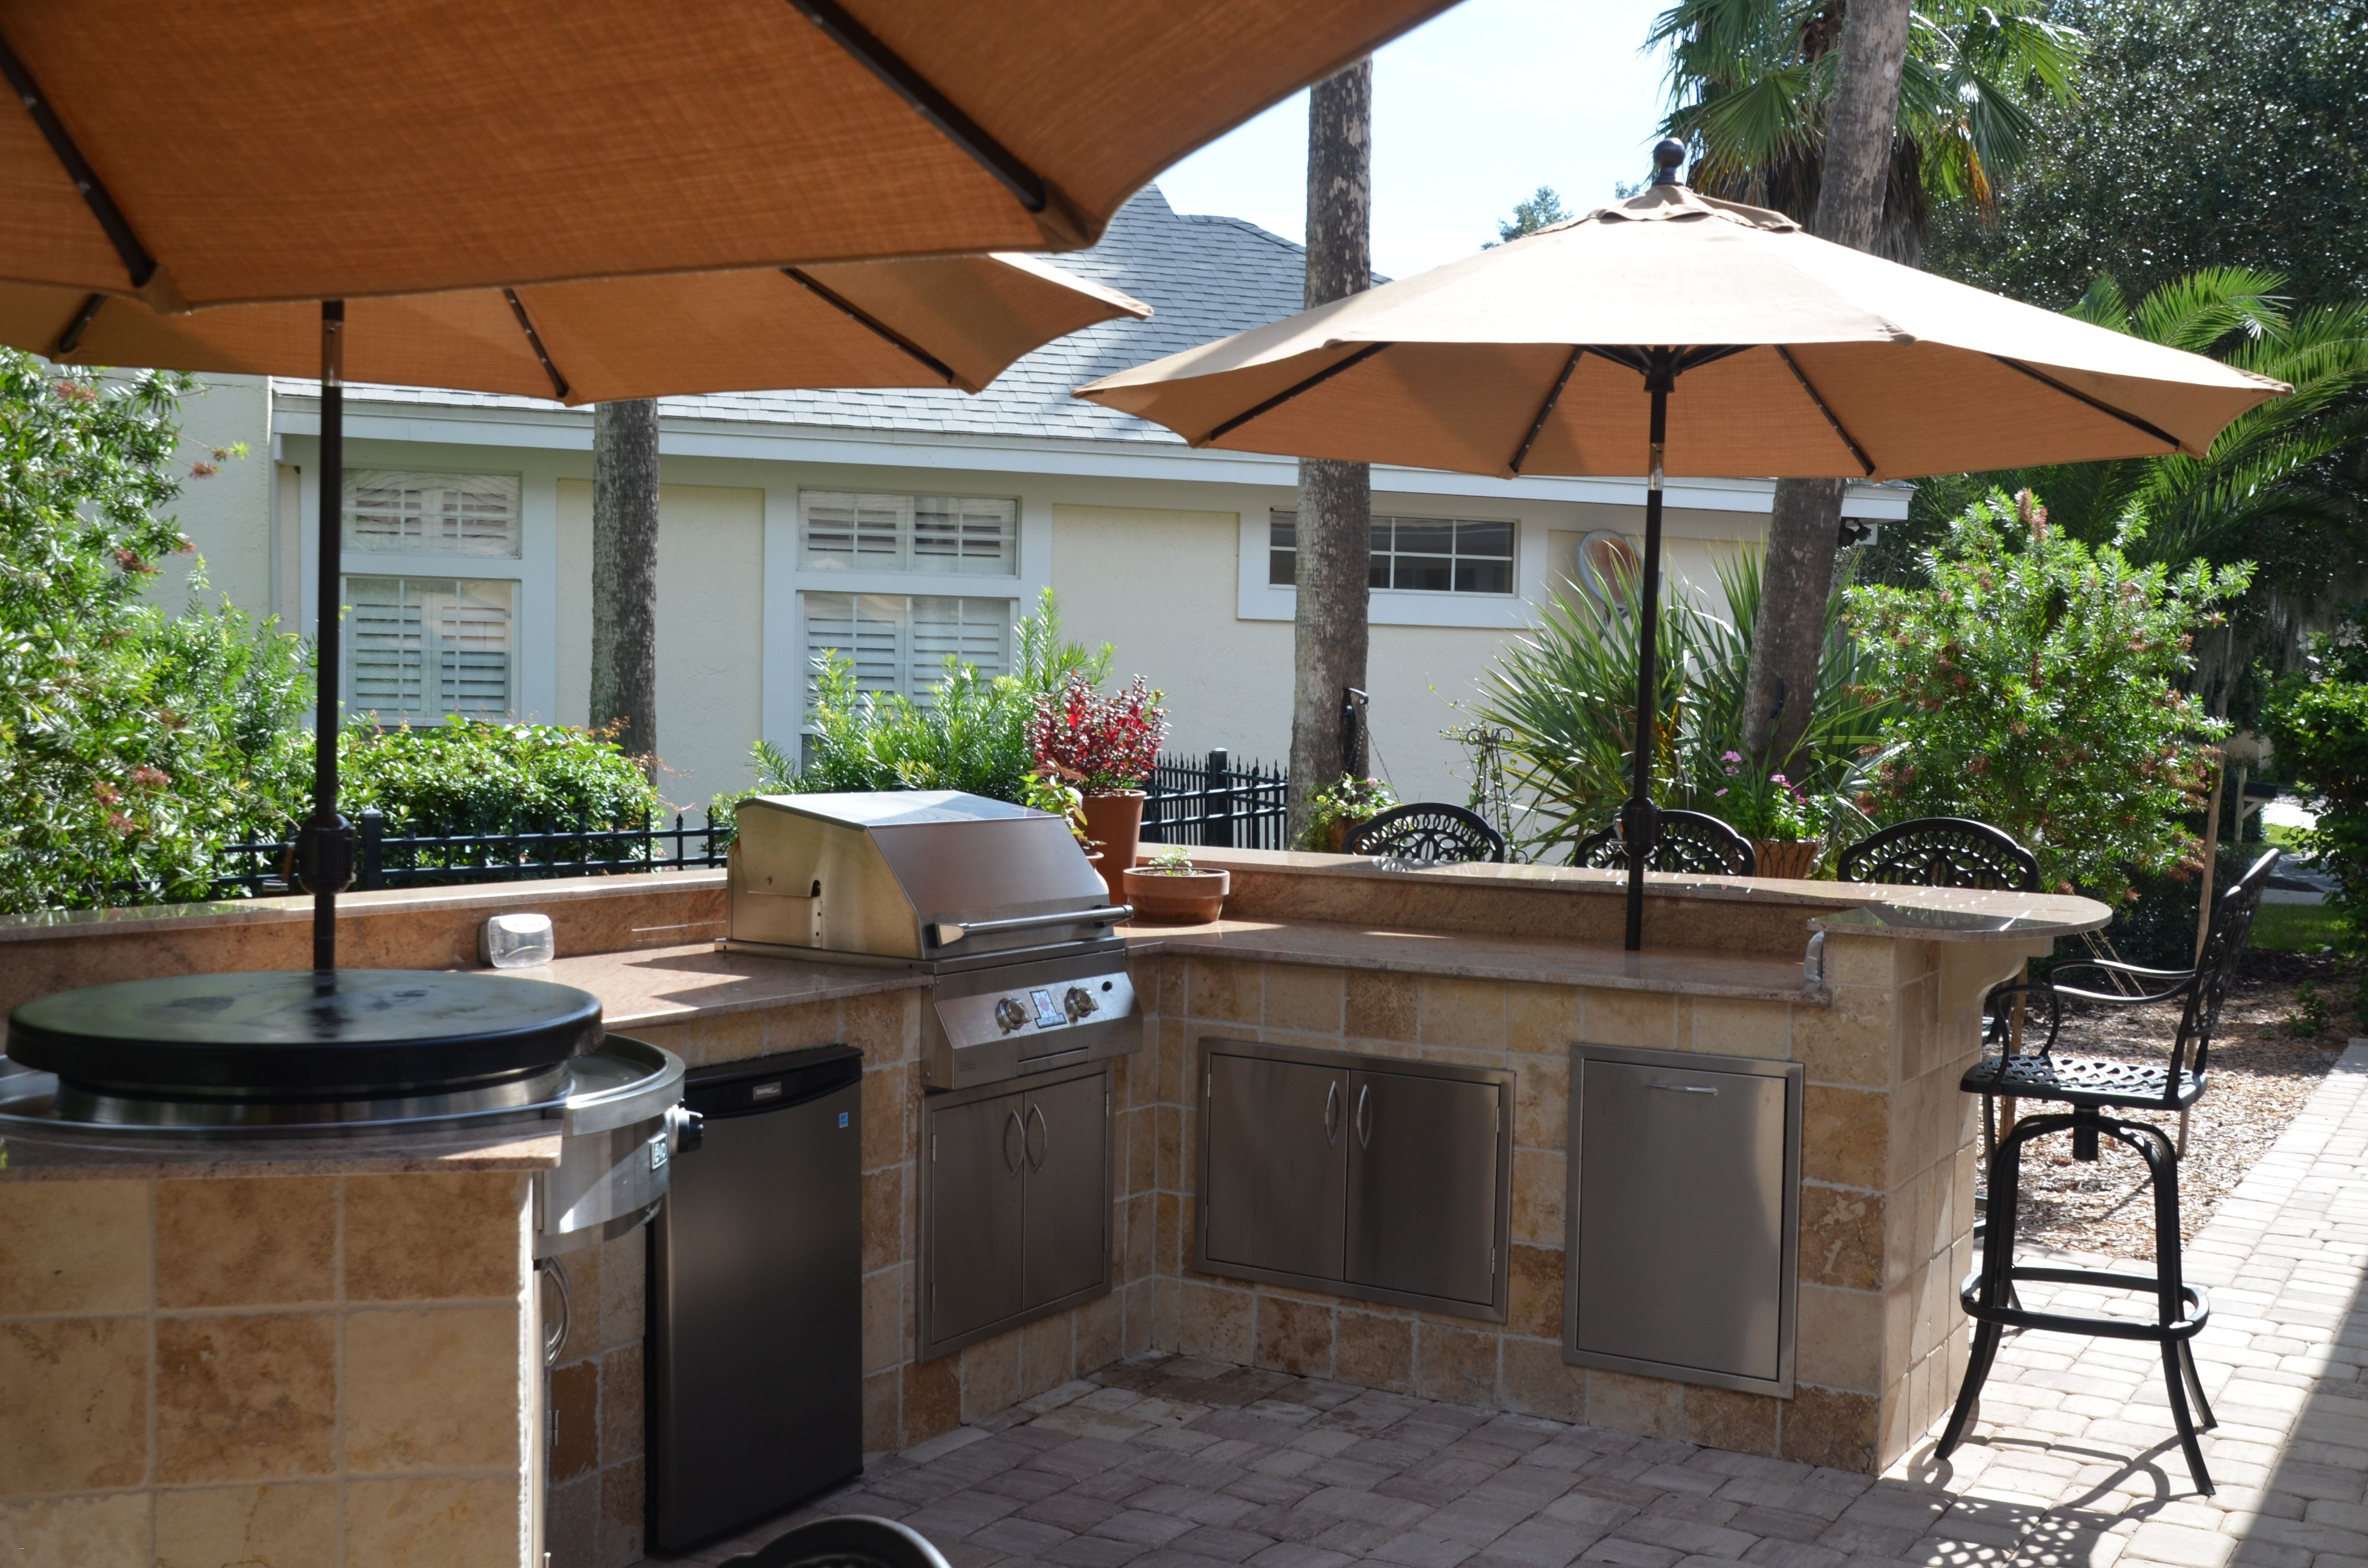 Outdoor Kitchen Las Vegas Luxury Attractive Kitchens Bomelconsult 21 Inspirational